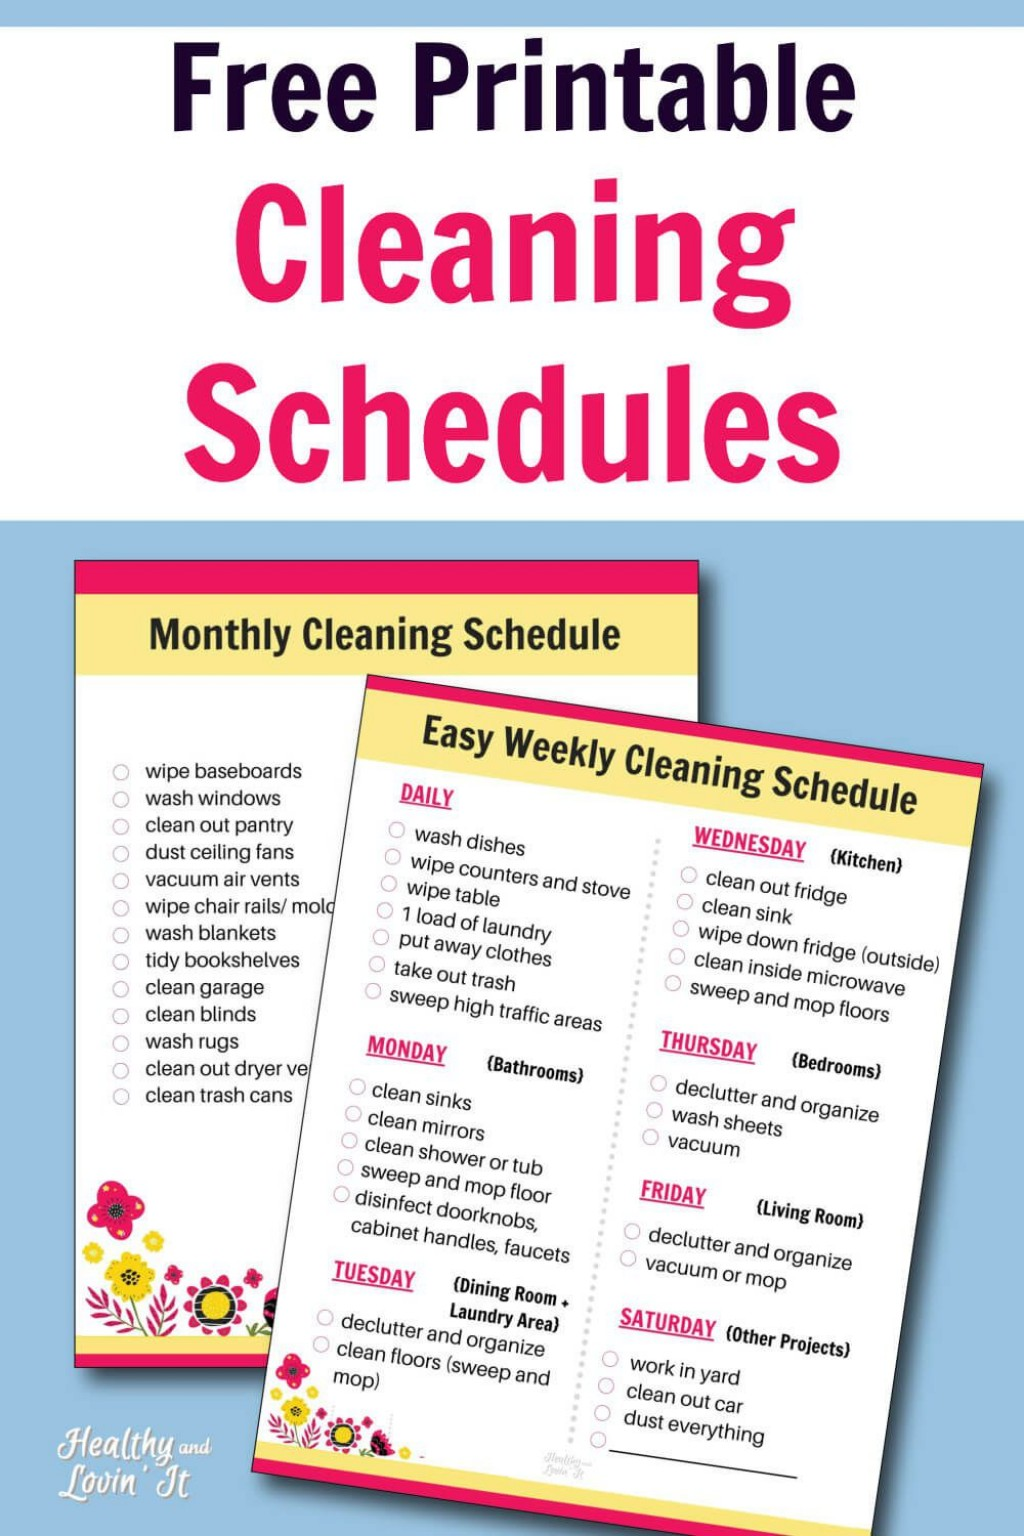 007 Shocking Free Printable Weekly Cleaning Schedule Template Highest Quality  OfficeLarge